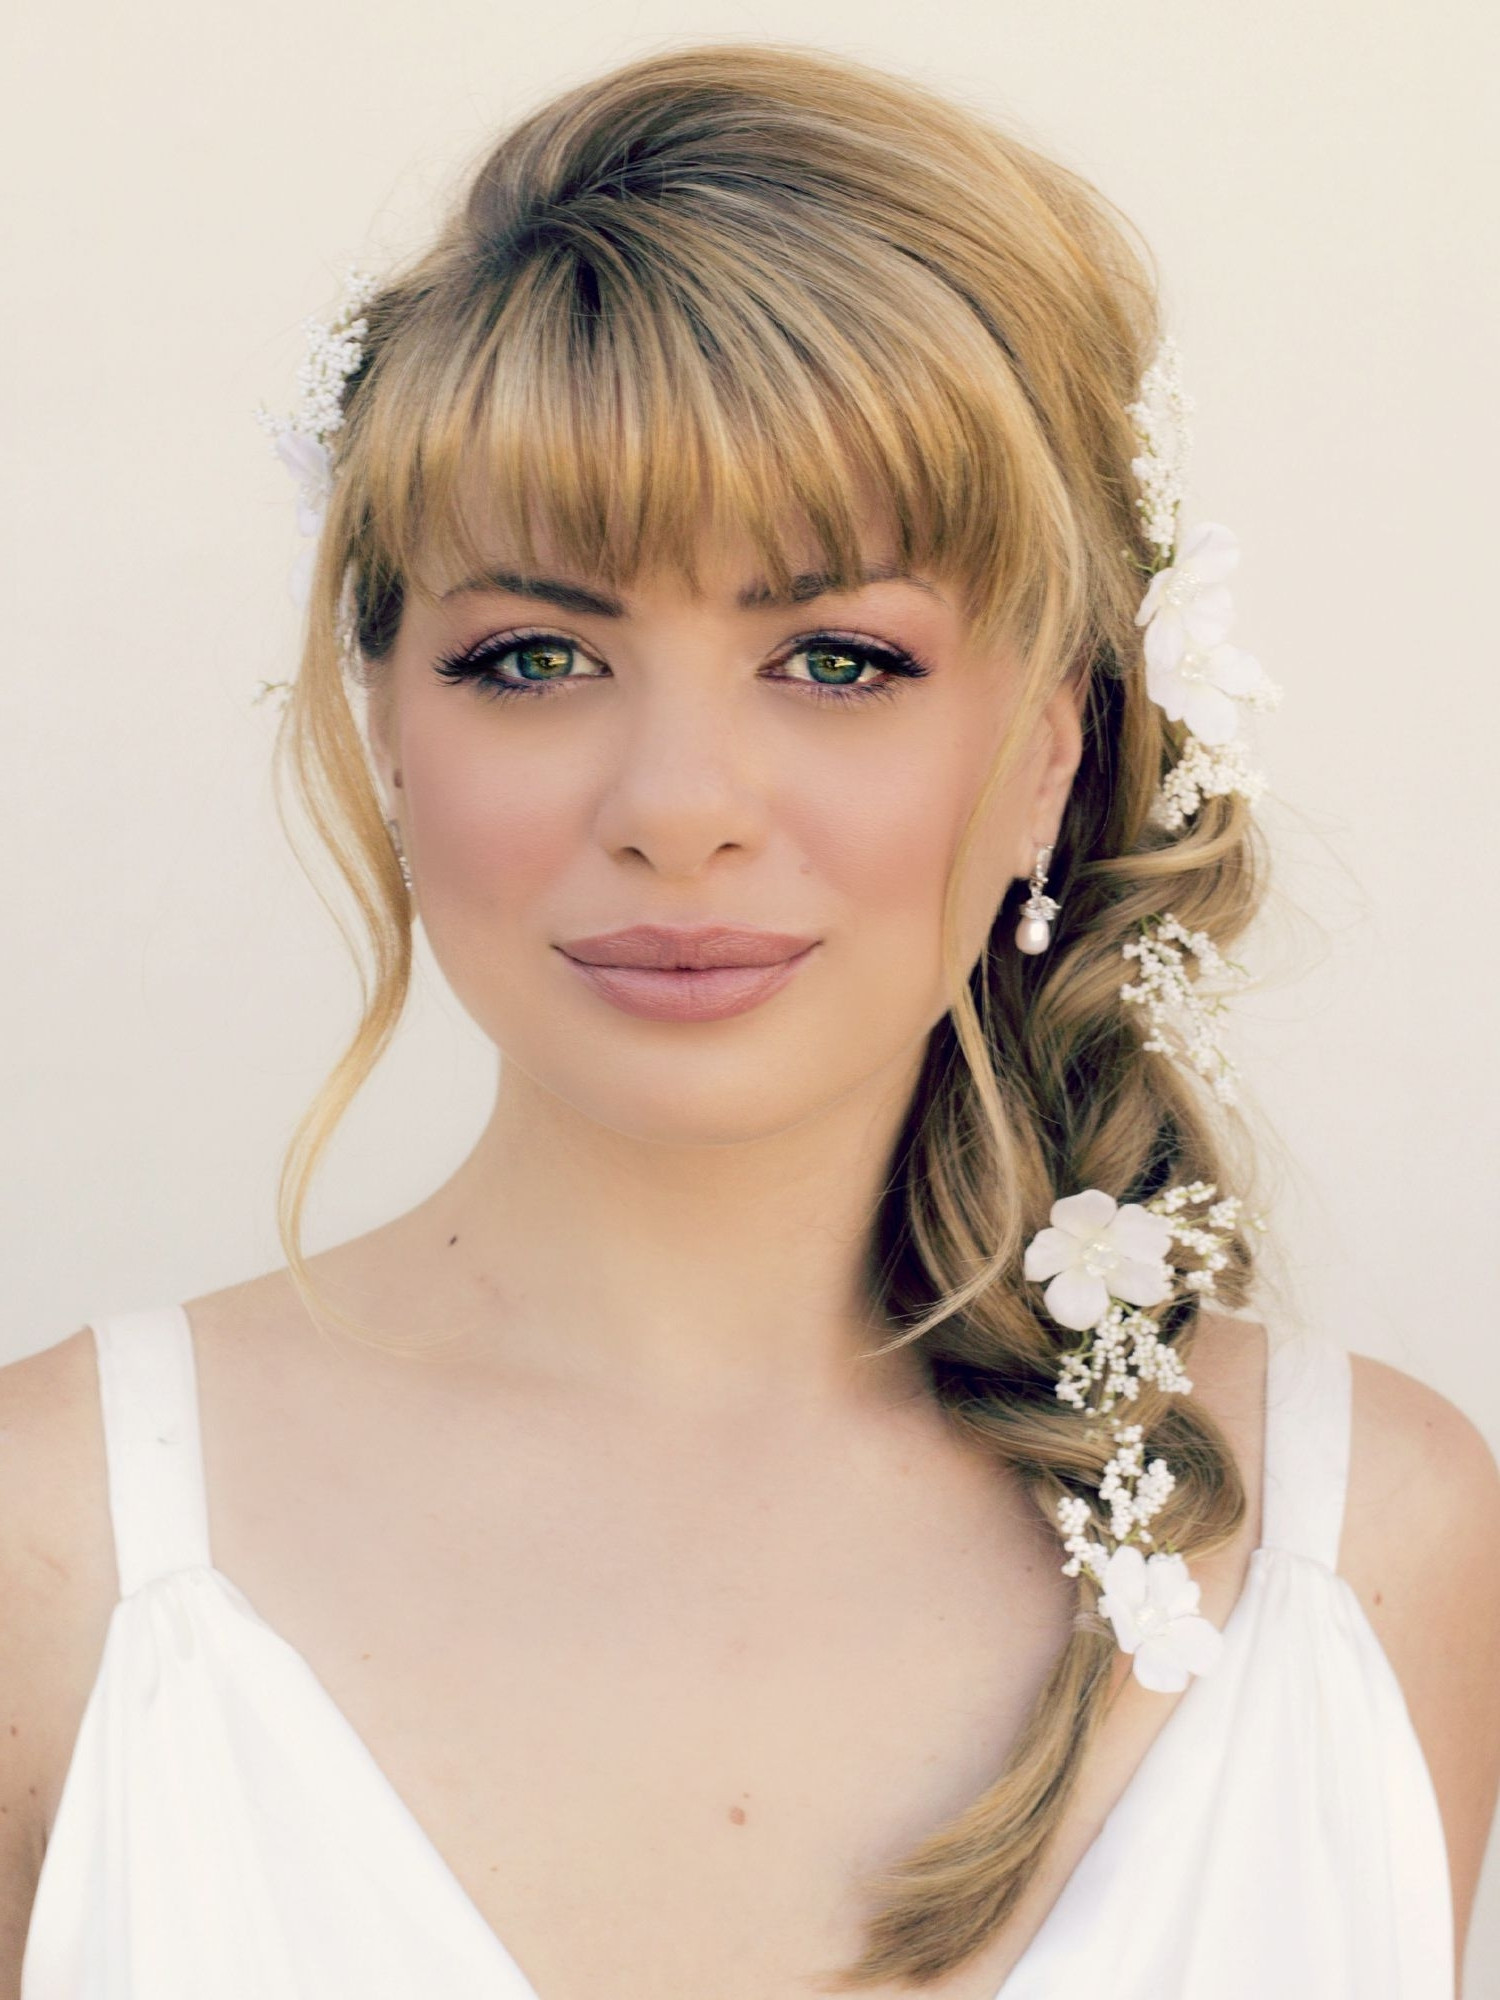 Pictures Of Wedding Hairstyles For Medium Length Hair  15 Best Collection of Wedding Hairstyles For Medium Length